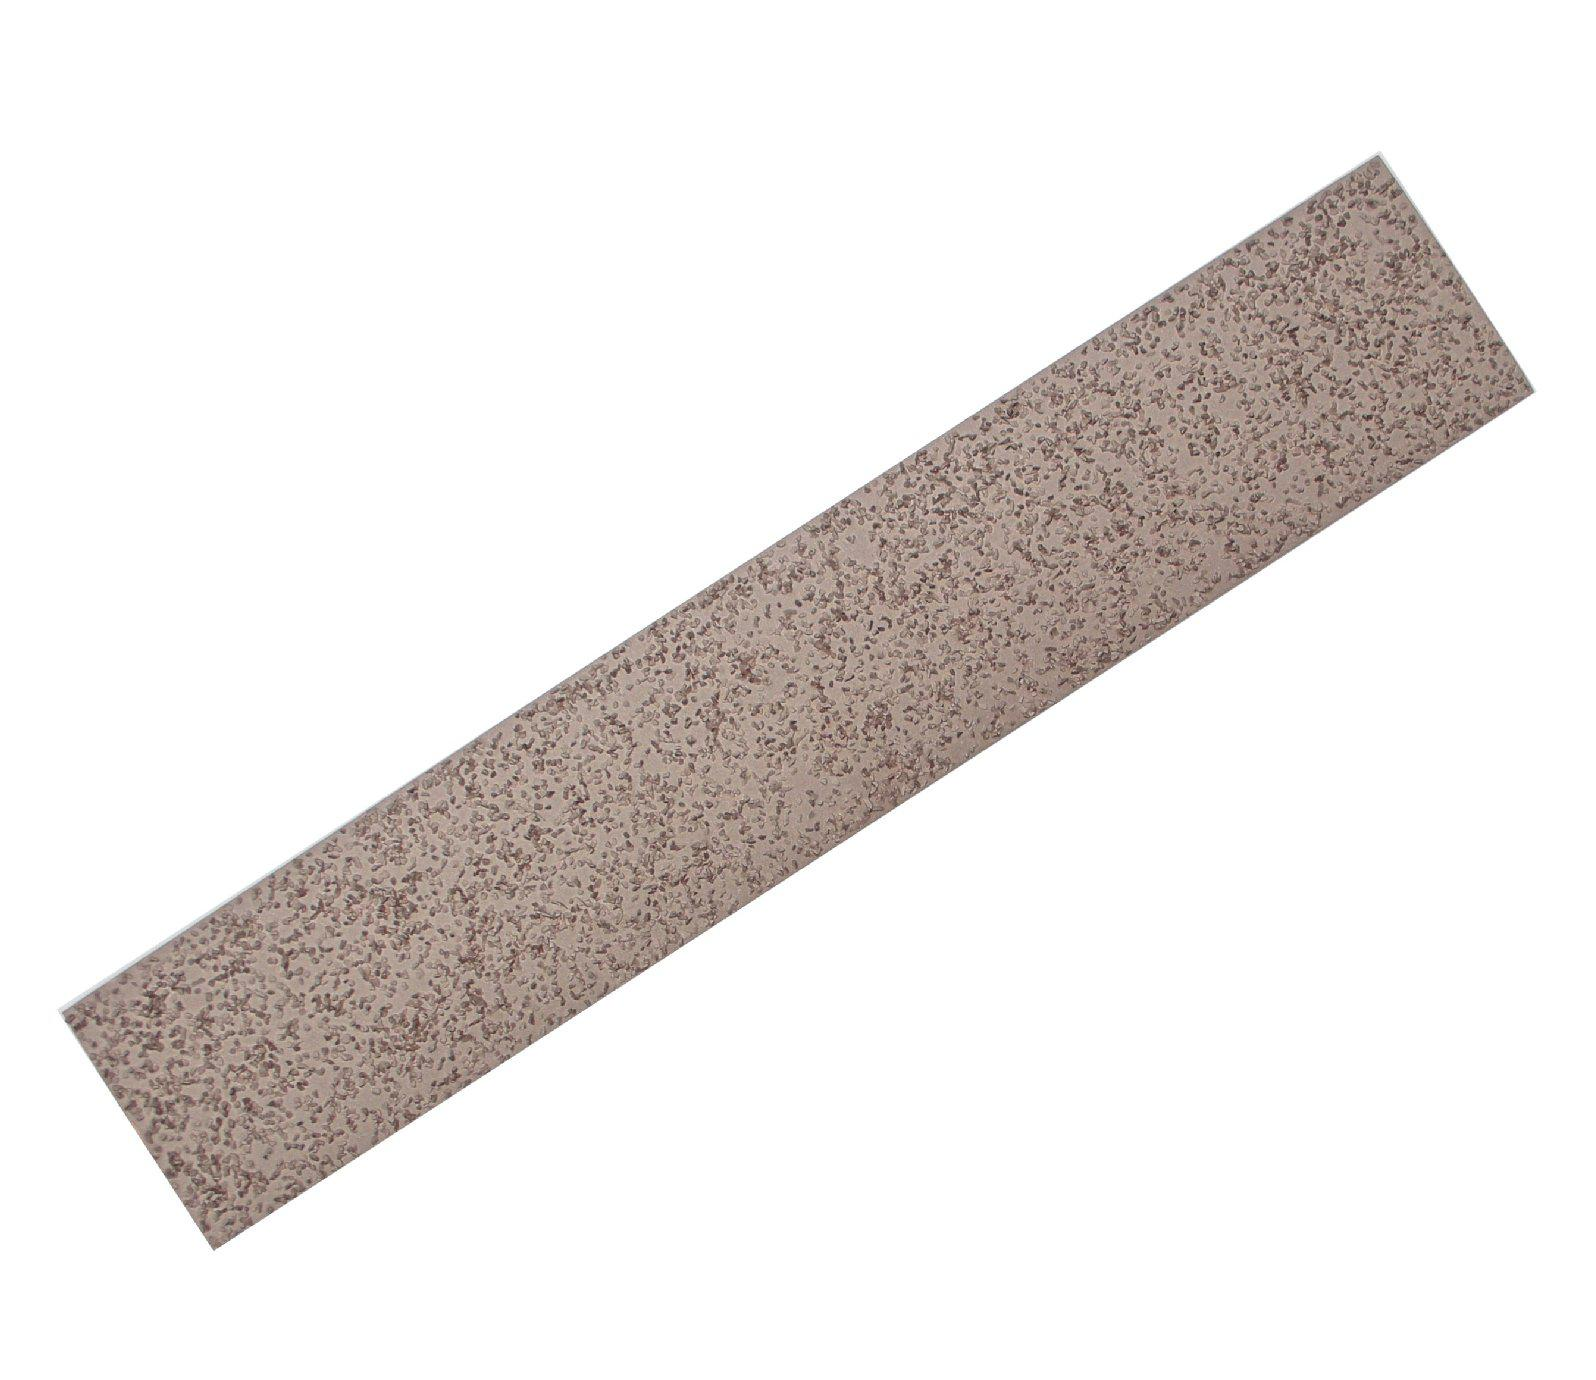 Flexible File  280 x 51mm XXCOARSE